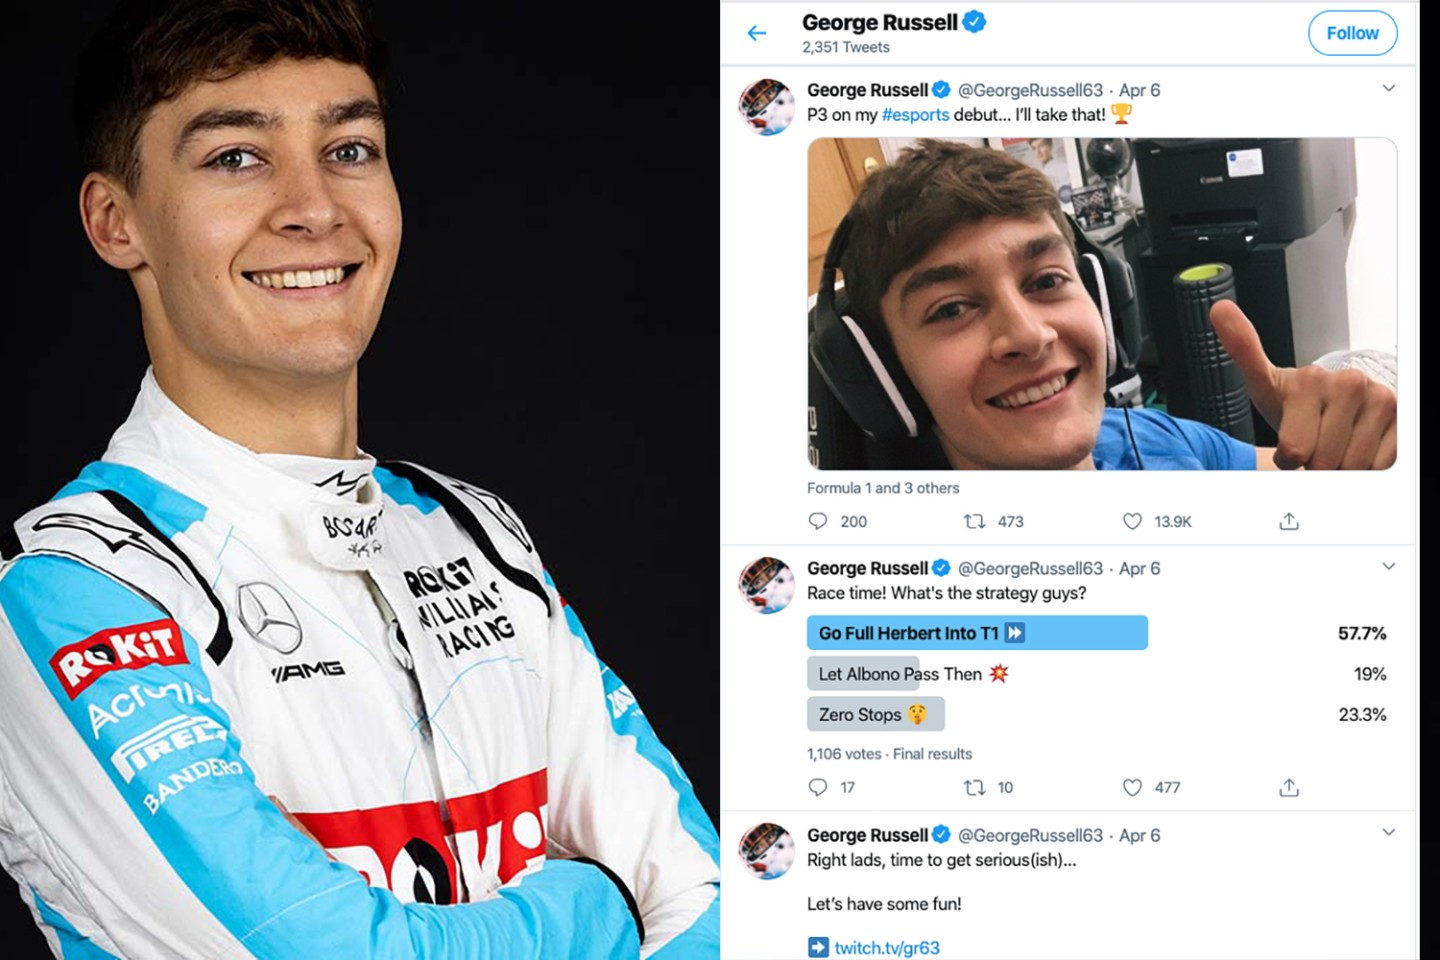 Rockit Williams F1 Racing's George Russell brings personality-plus to any equation. George scored a podium in his first virtual competition and was thoroughly delighted